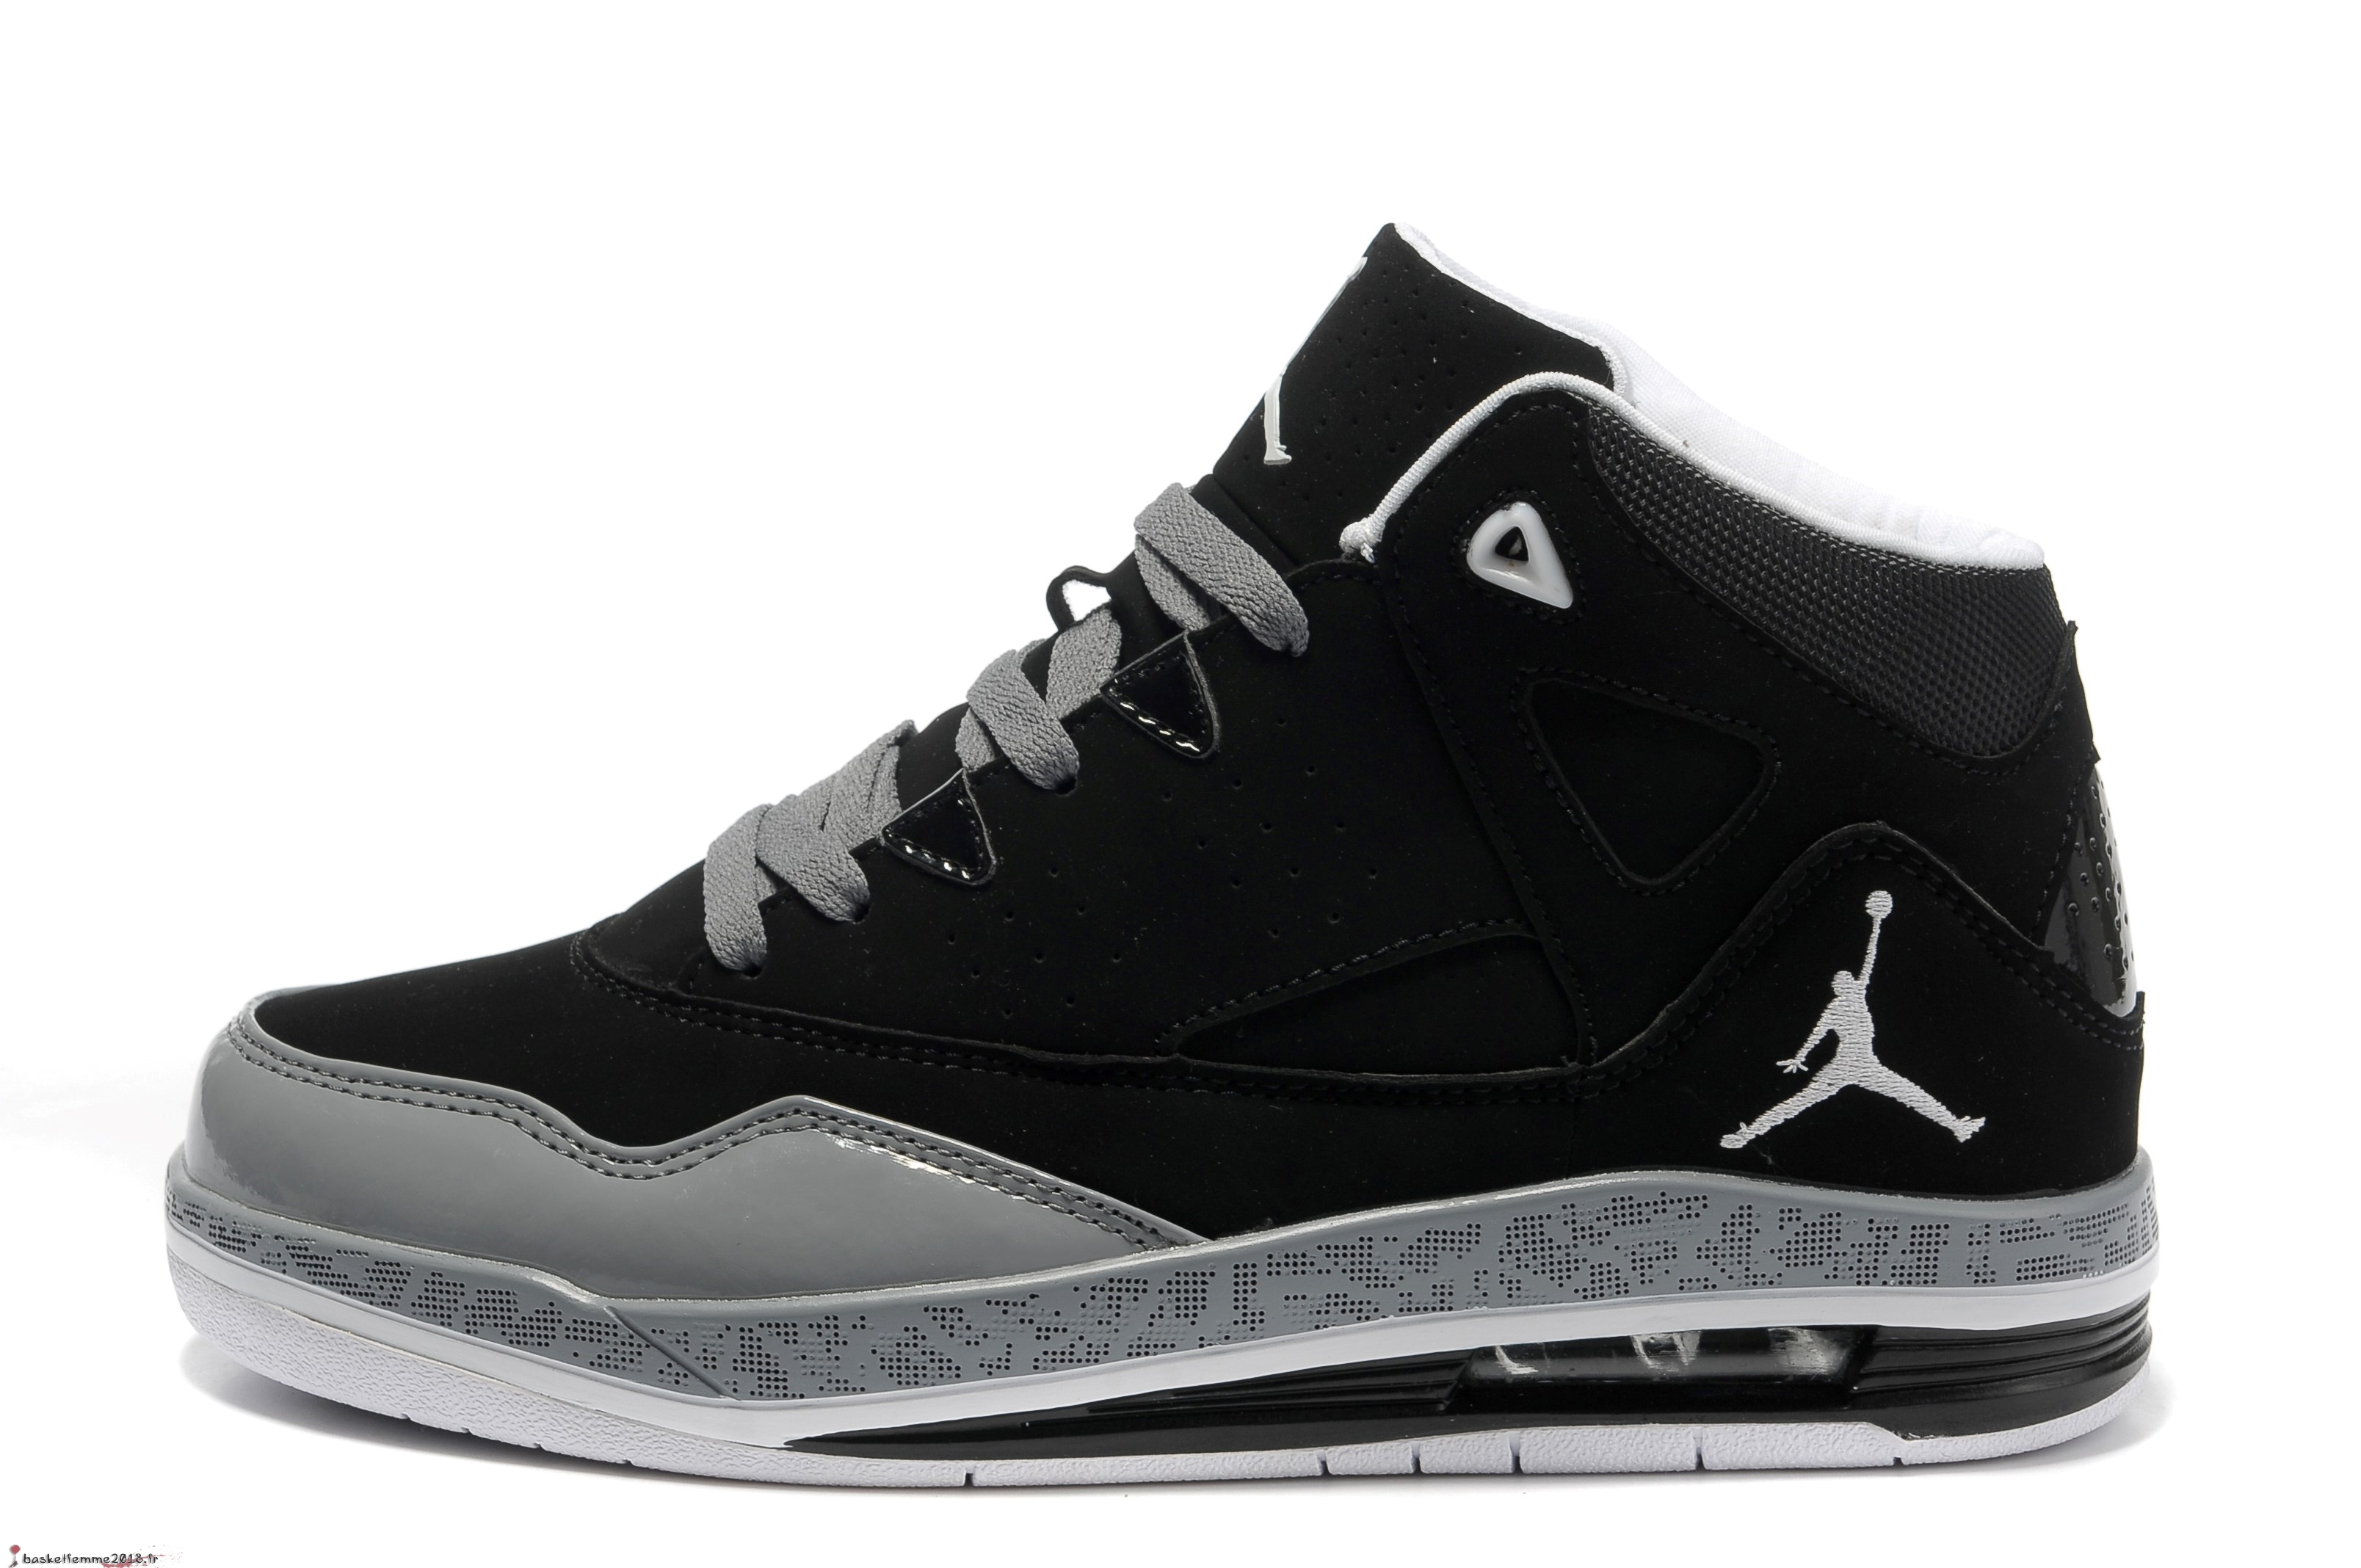 detailed look 58049 a4947 ... germany air jordan jumpman team 2 gs homme noir blanc chaussure de  basket 879d0 d5c86